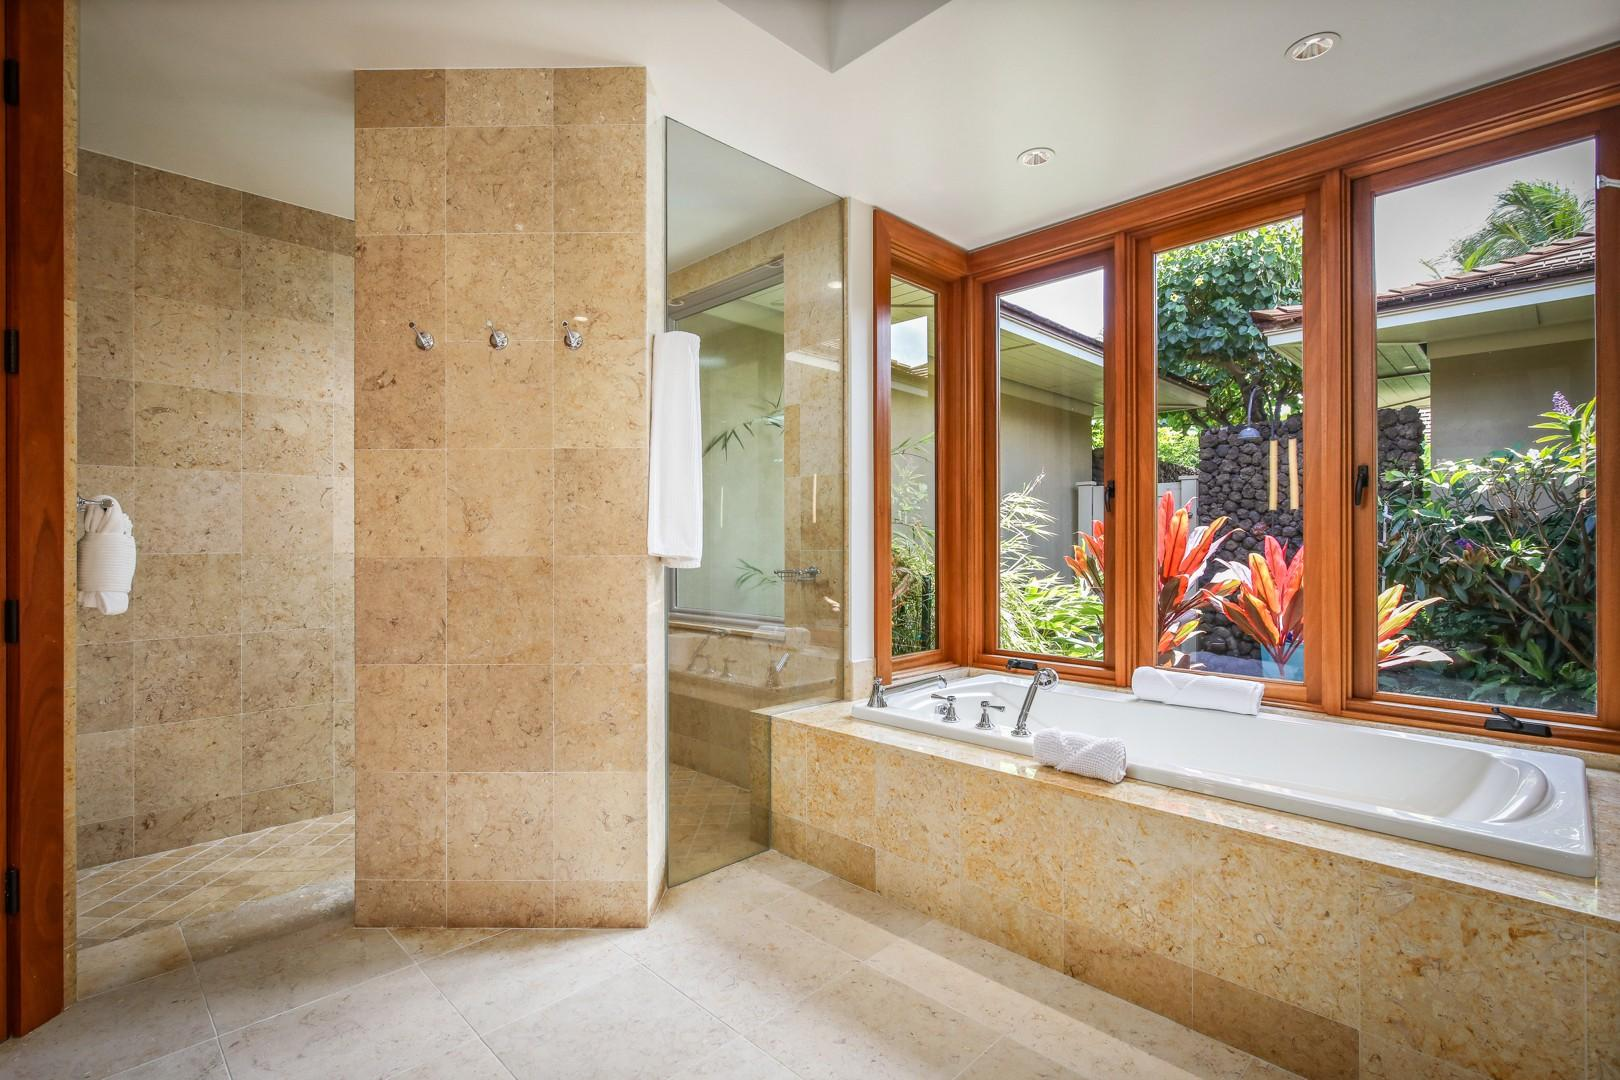 Master suite shower and tub.